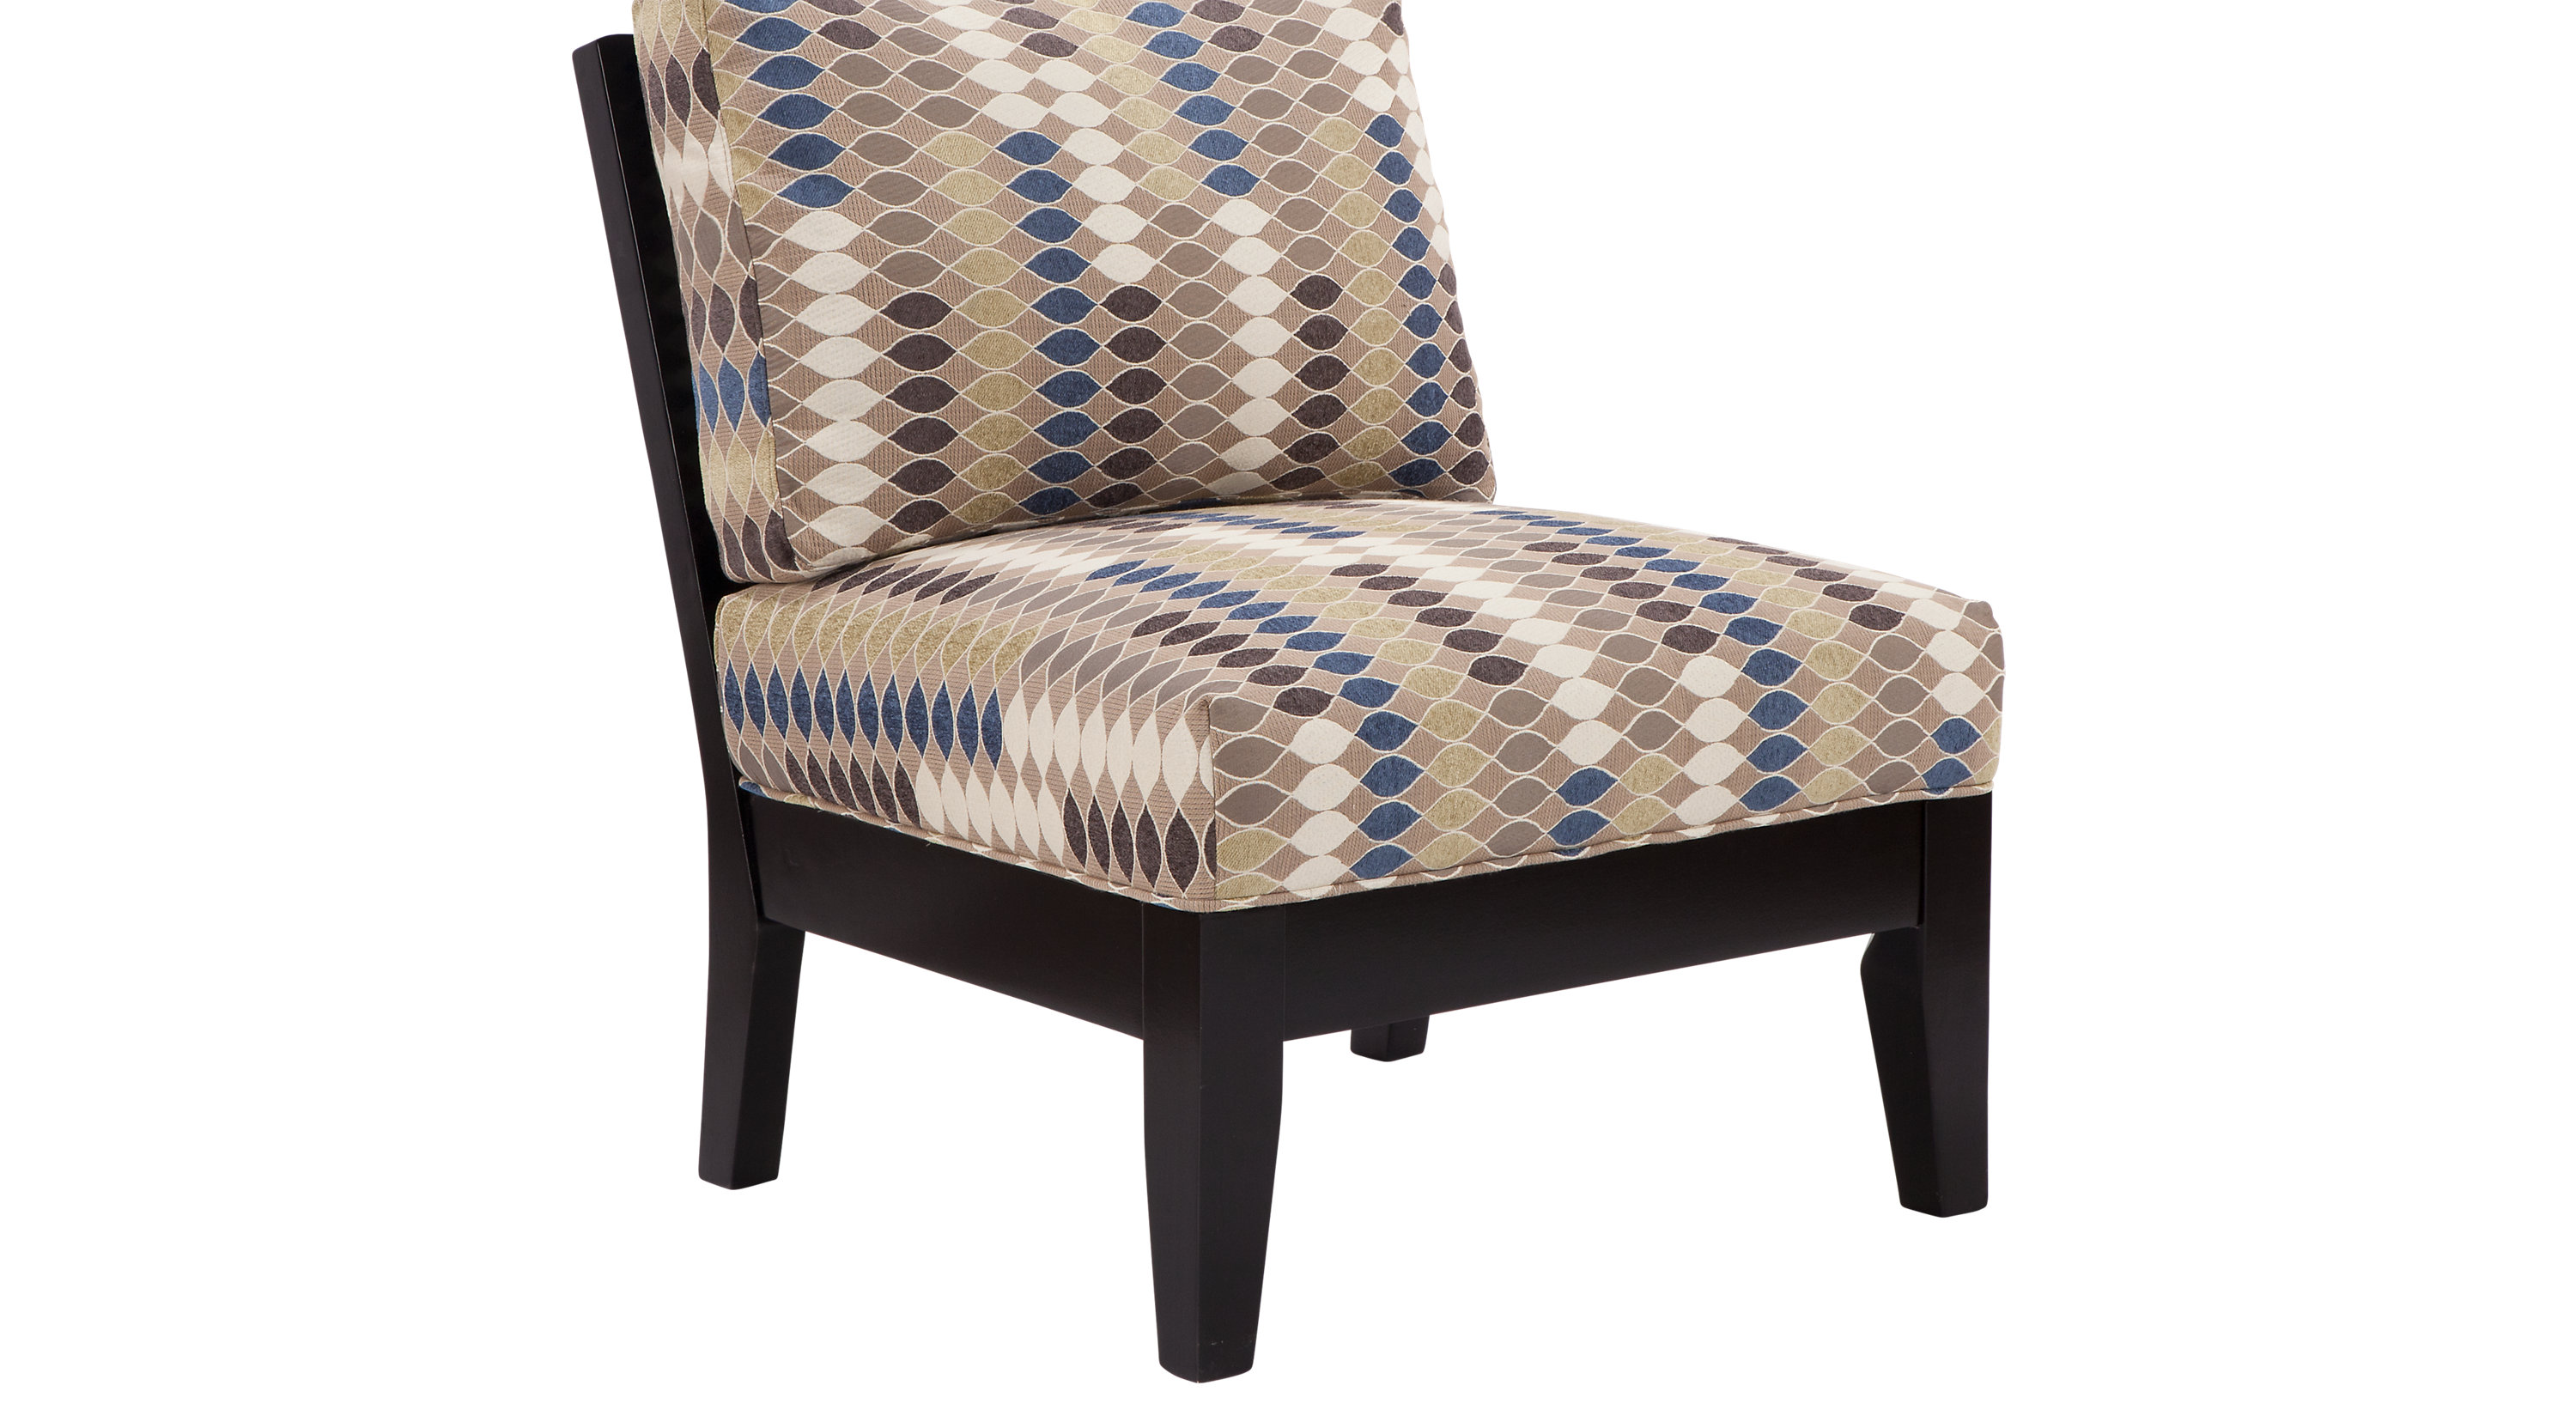 Charmant $349.99   Buckshot Azure Brown Accent Chair   Upholstered   Transitional,  Chenille